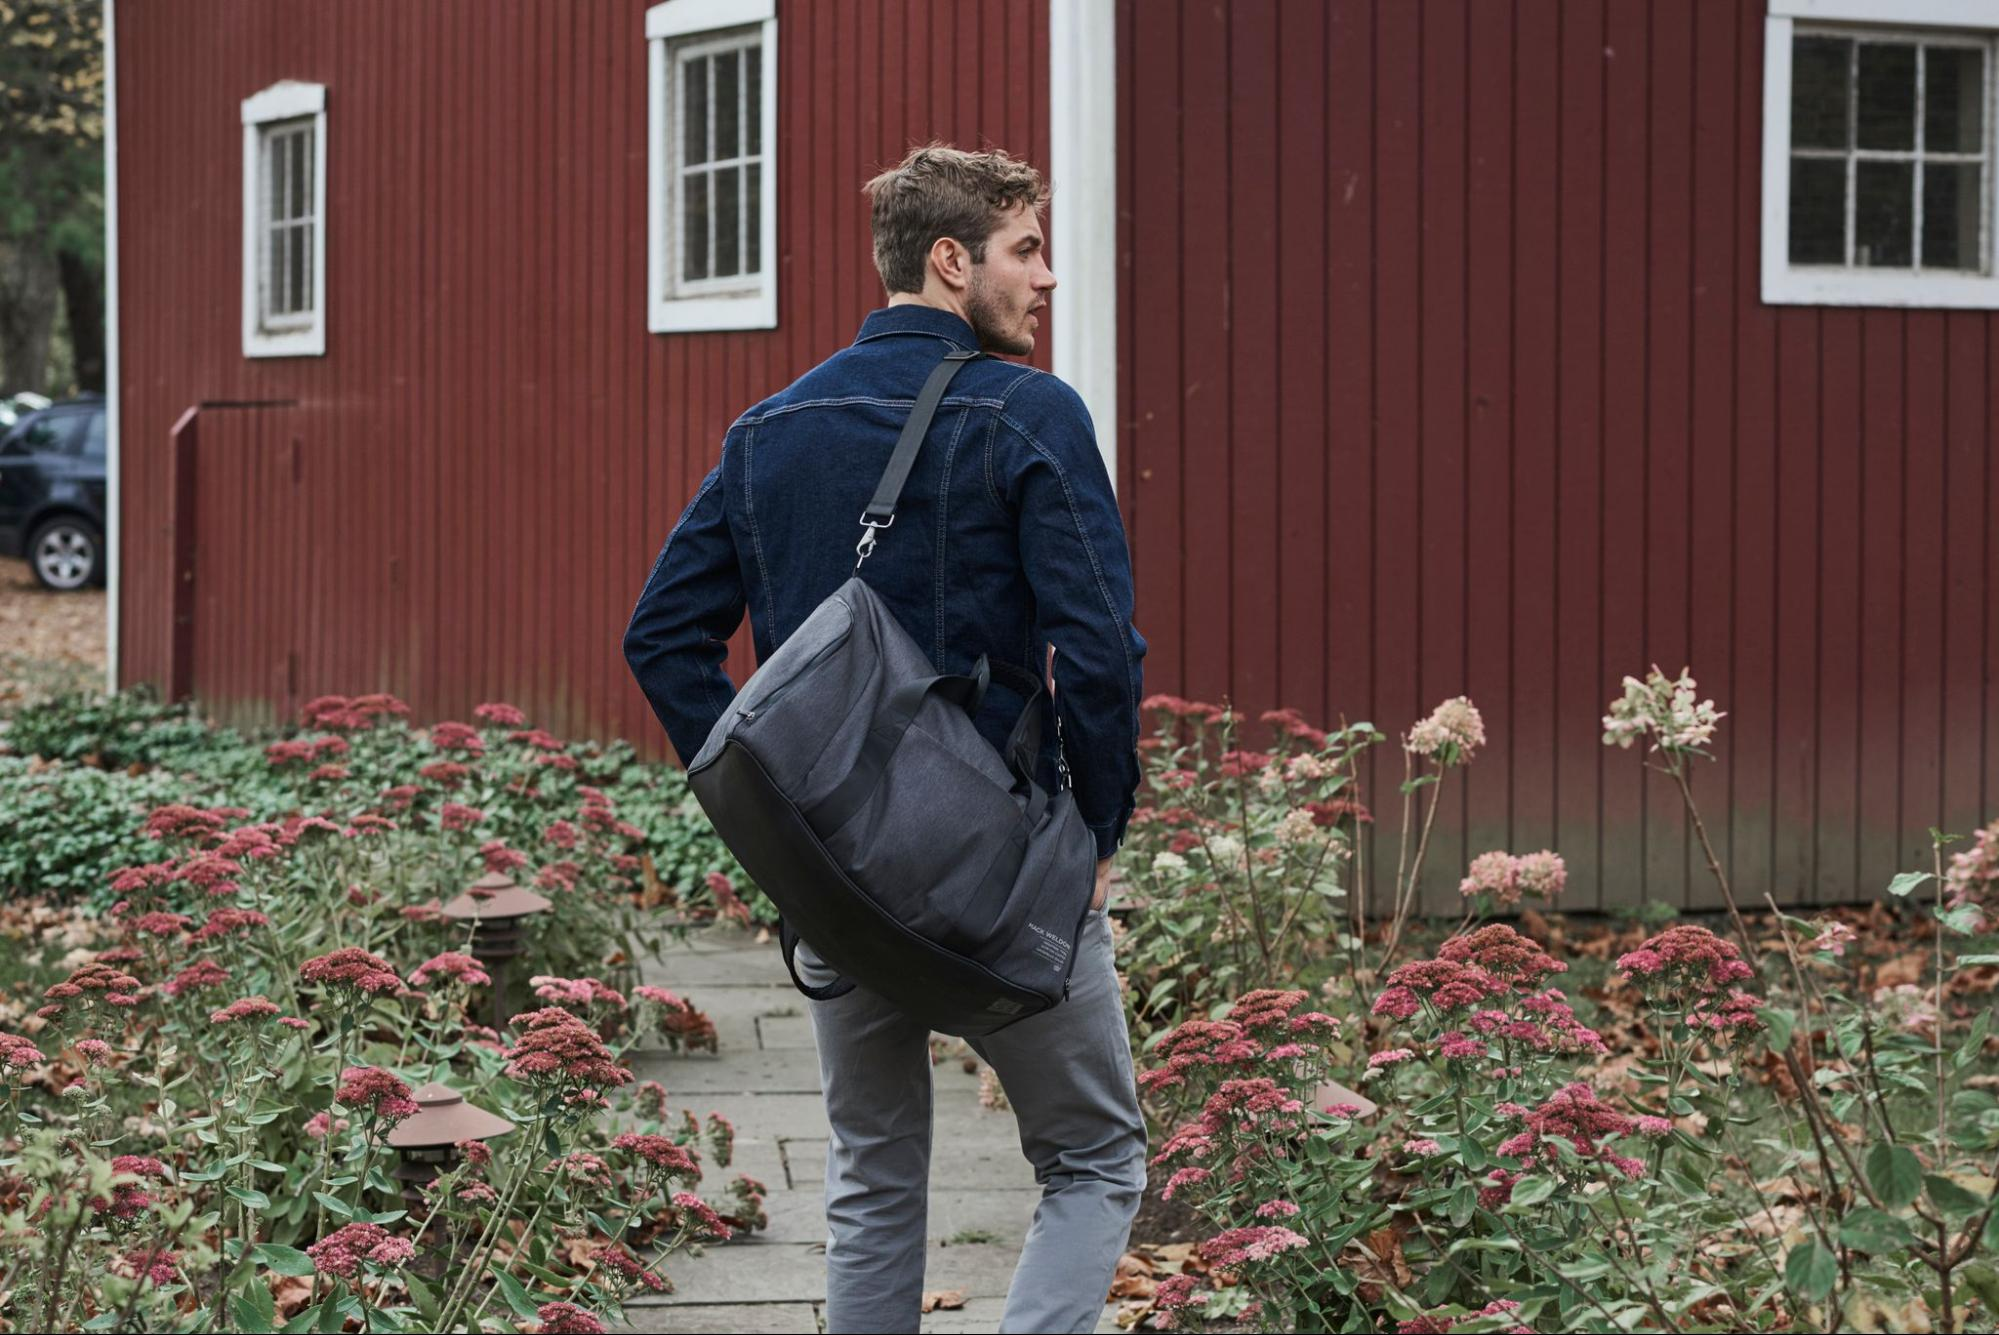 A model in a pair of jeans jacket and jeans carrying a weekender bag by Mack Weldon.